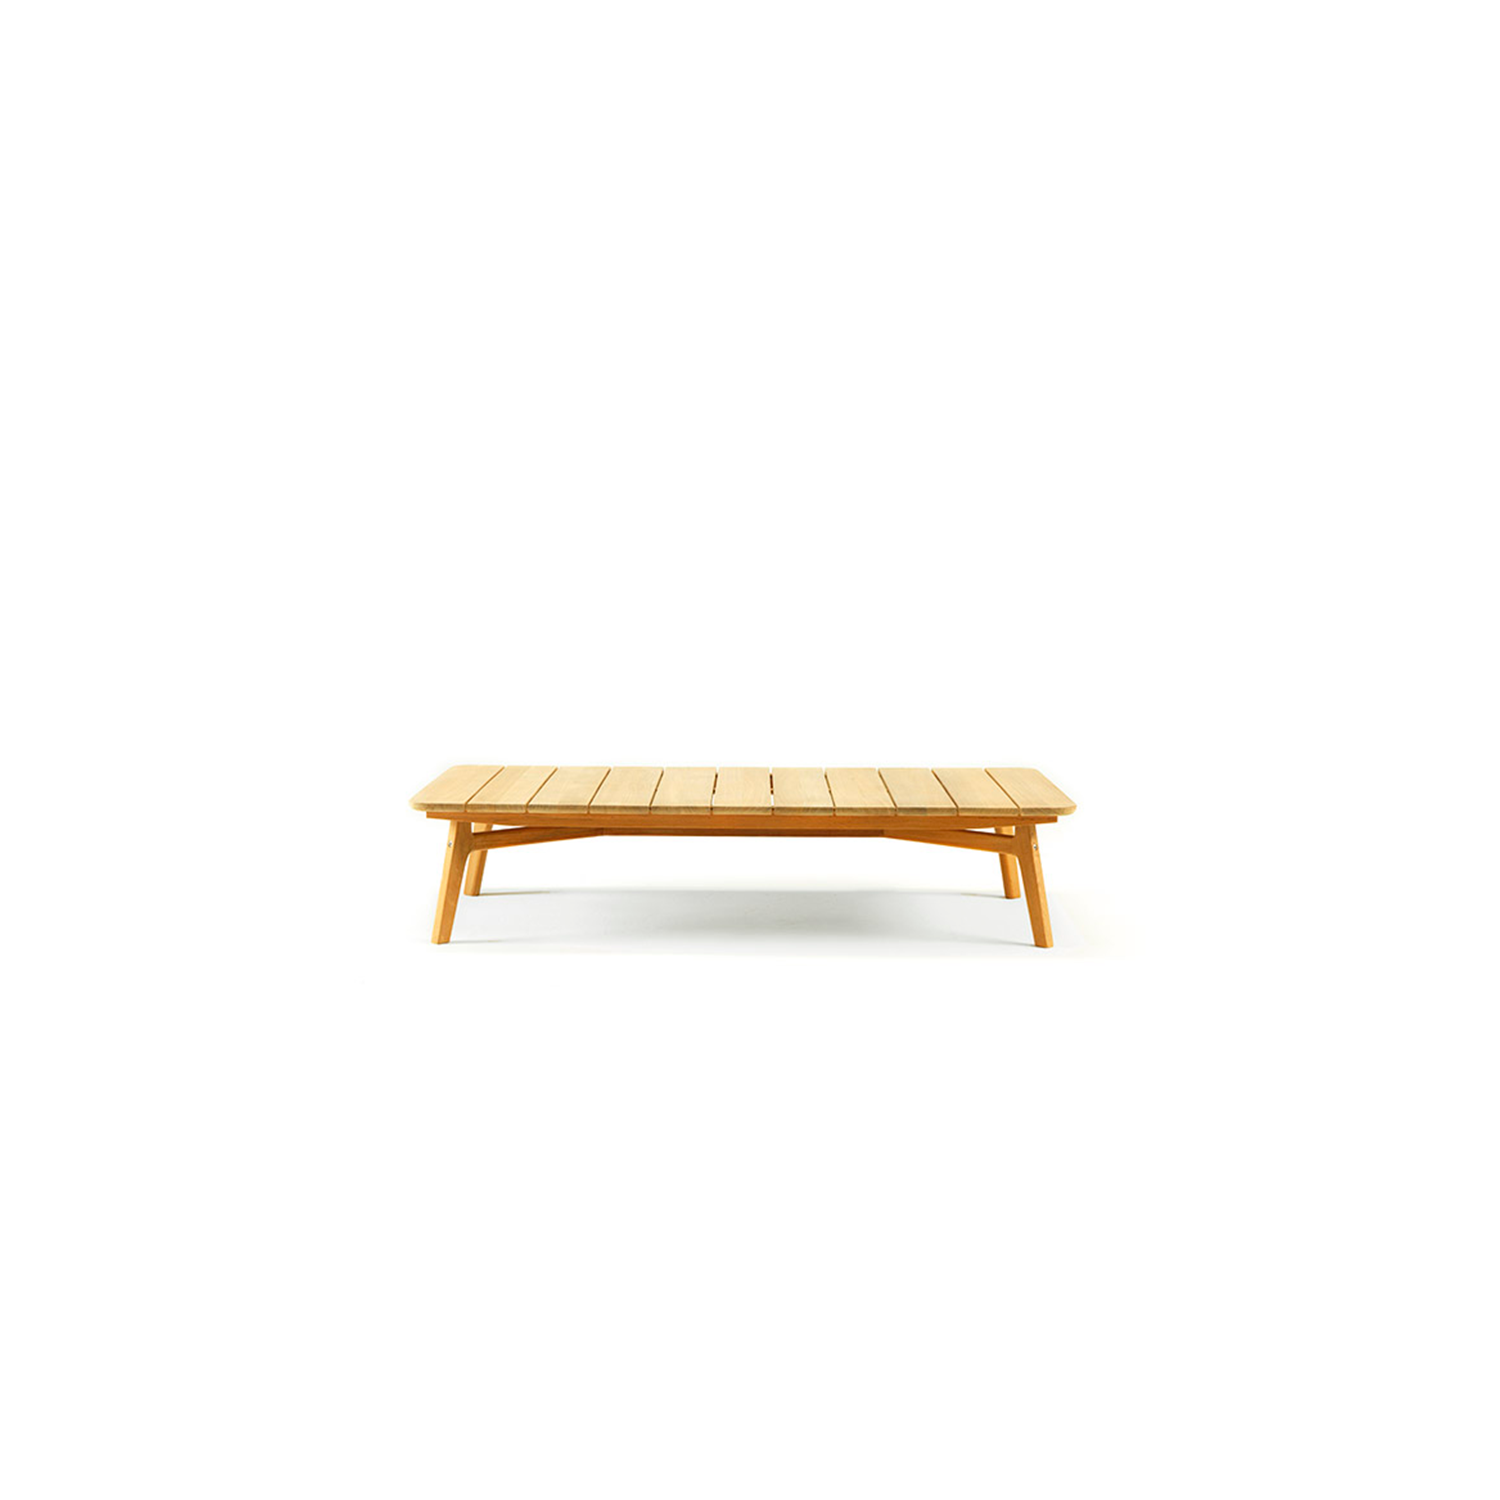 Knit Rectangular Coffee Table - Knit is a complete line of tables, chairs and lounge chairs in teak and woven rope that expresses with refinement a perfect synthesis of aesthetics, functionality and ergonomics. The iconic collection is enriched by the new version in pickled teak and light gray rope and the rocking version of the lounge chair with high back, thus offering a new and special interpretation of the classic bergère.  Rain cover is available at extra cost. Please enquire for more information. | Matter of Stuff